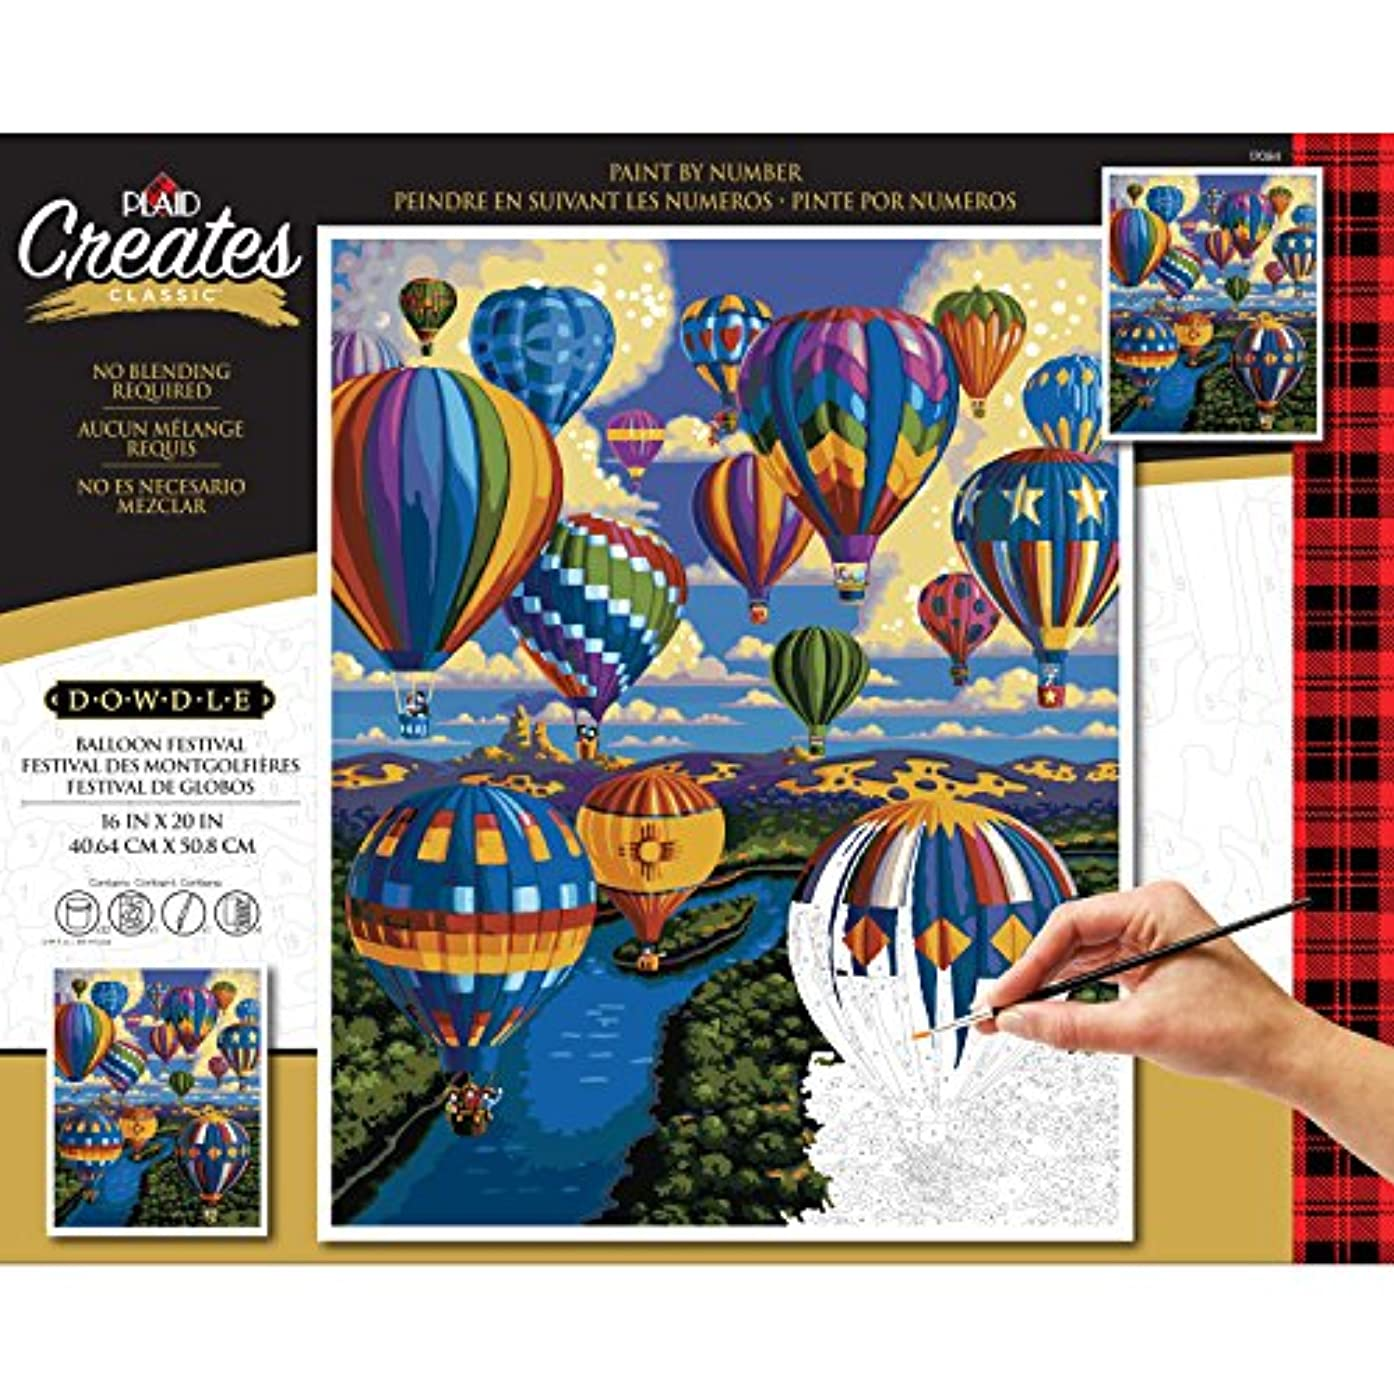 Plaid Creates 17084 Paint by Number Kit 16